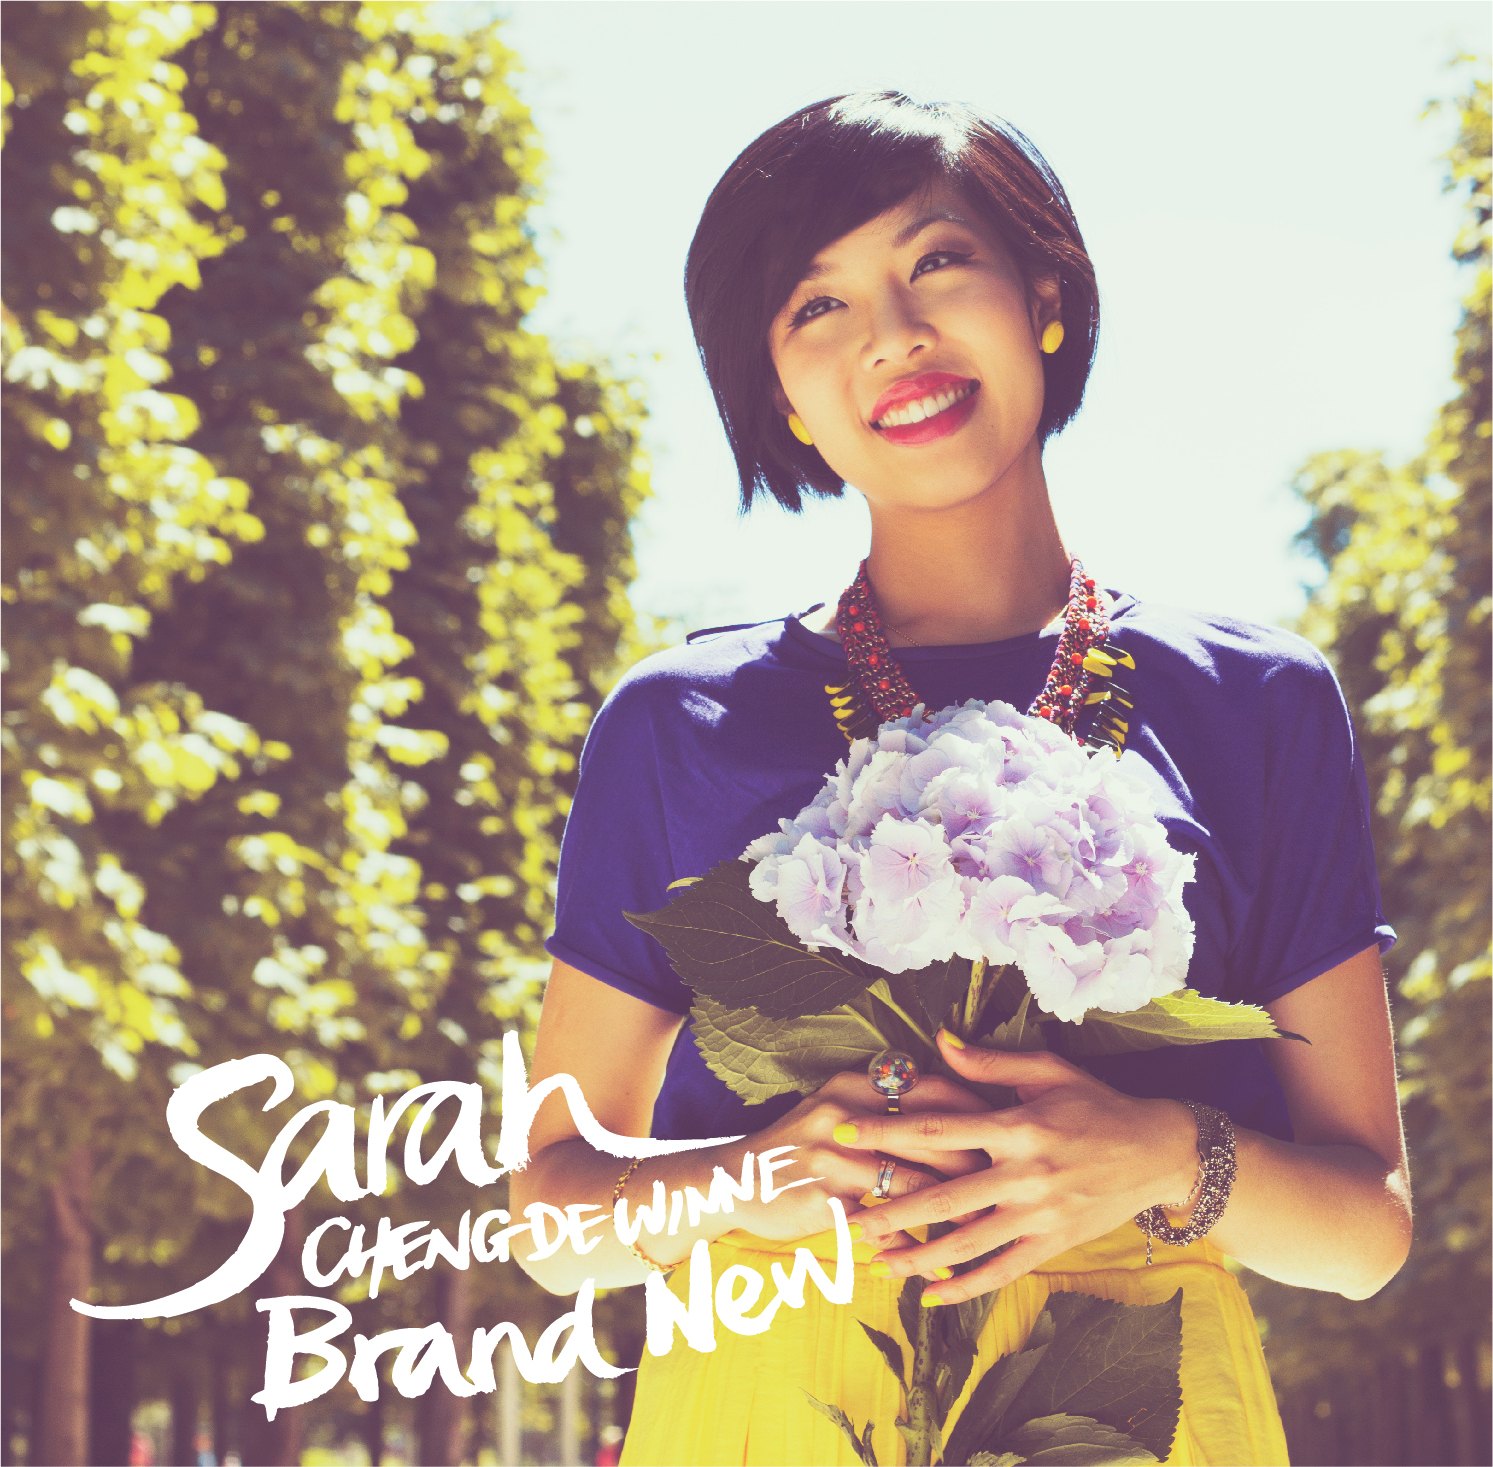 Sarah_Brand New 2014 Cover Artwork-04.jpg